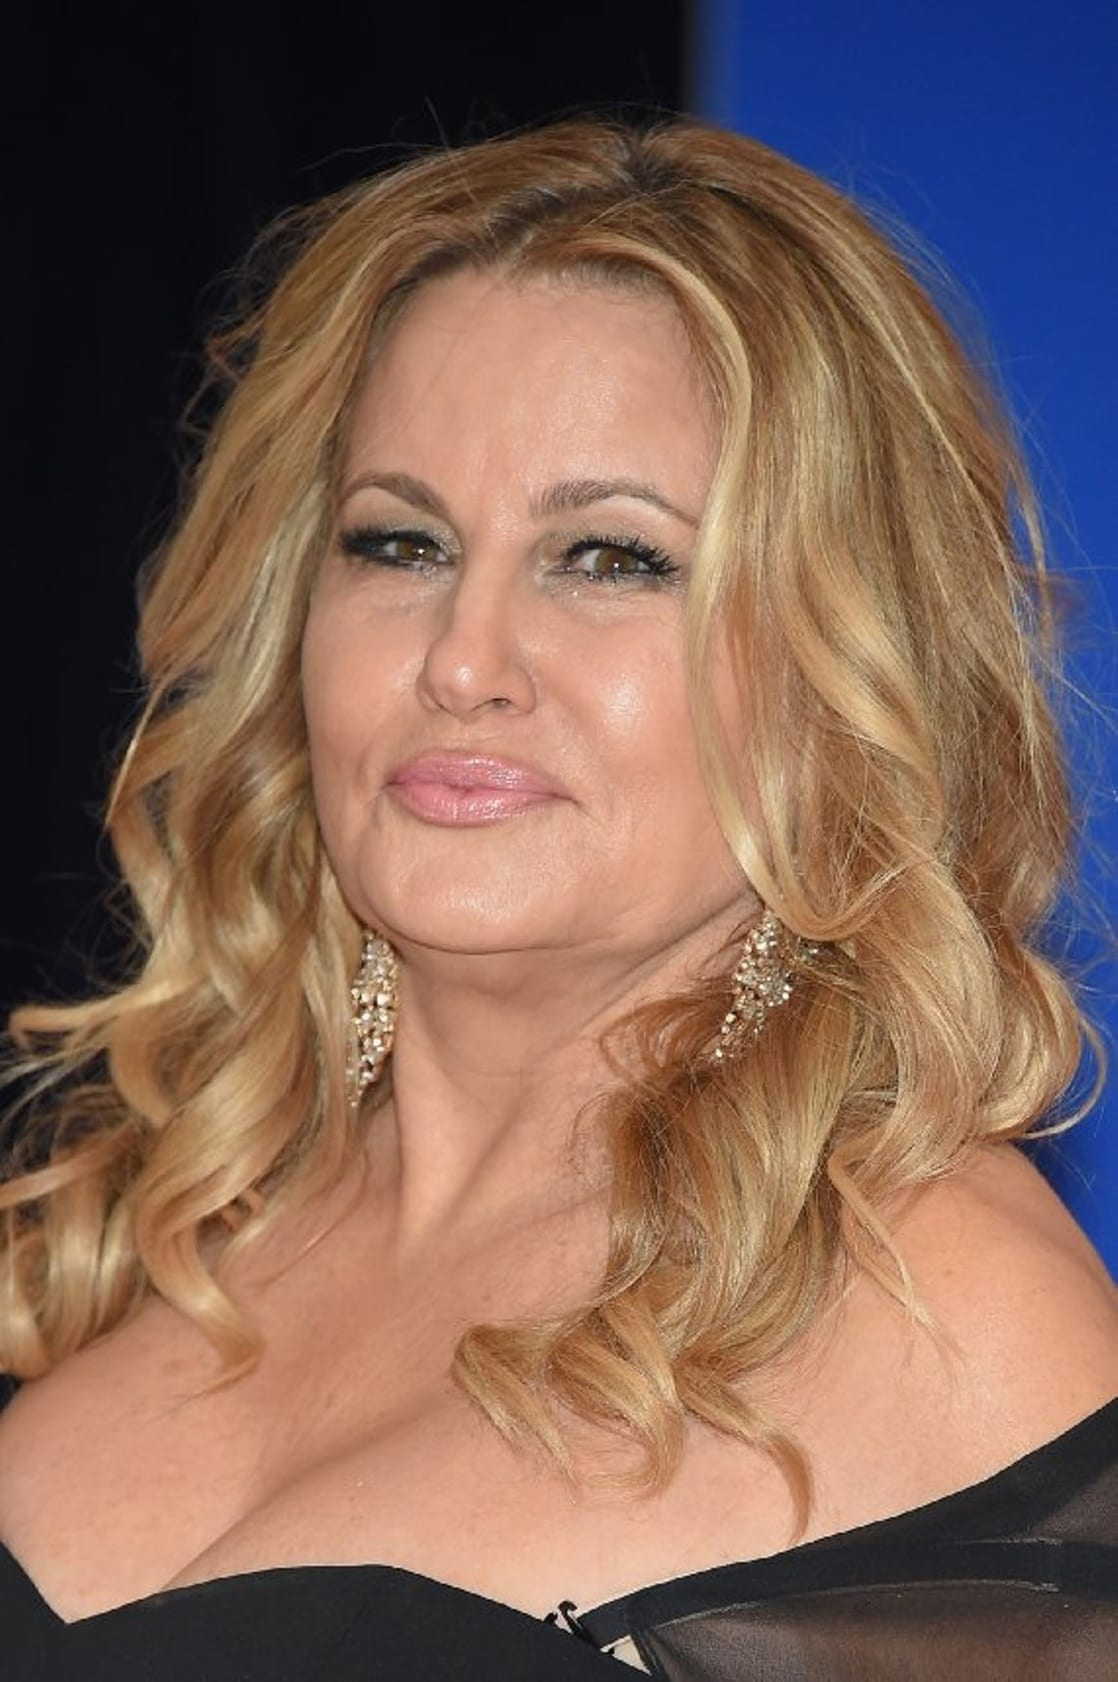 Jennifer Coolidge Xxx Ideal showing xxx images for jennifer coolidge cum tits xxx | www